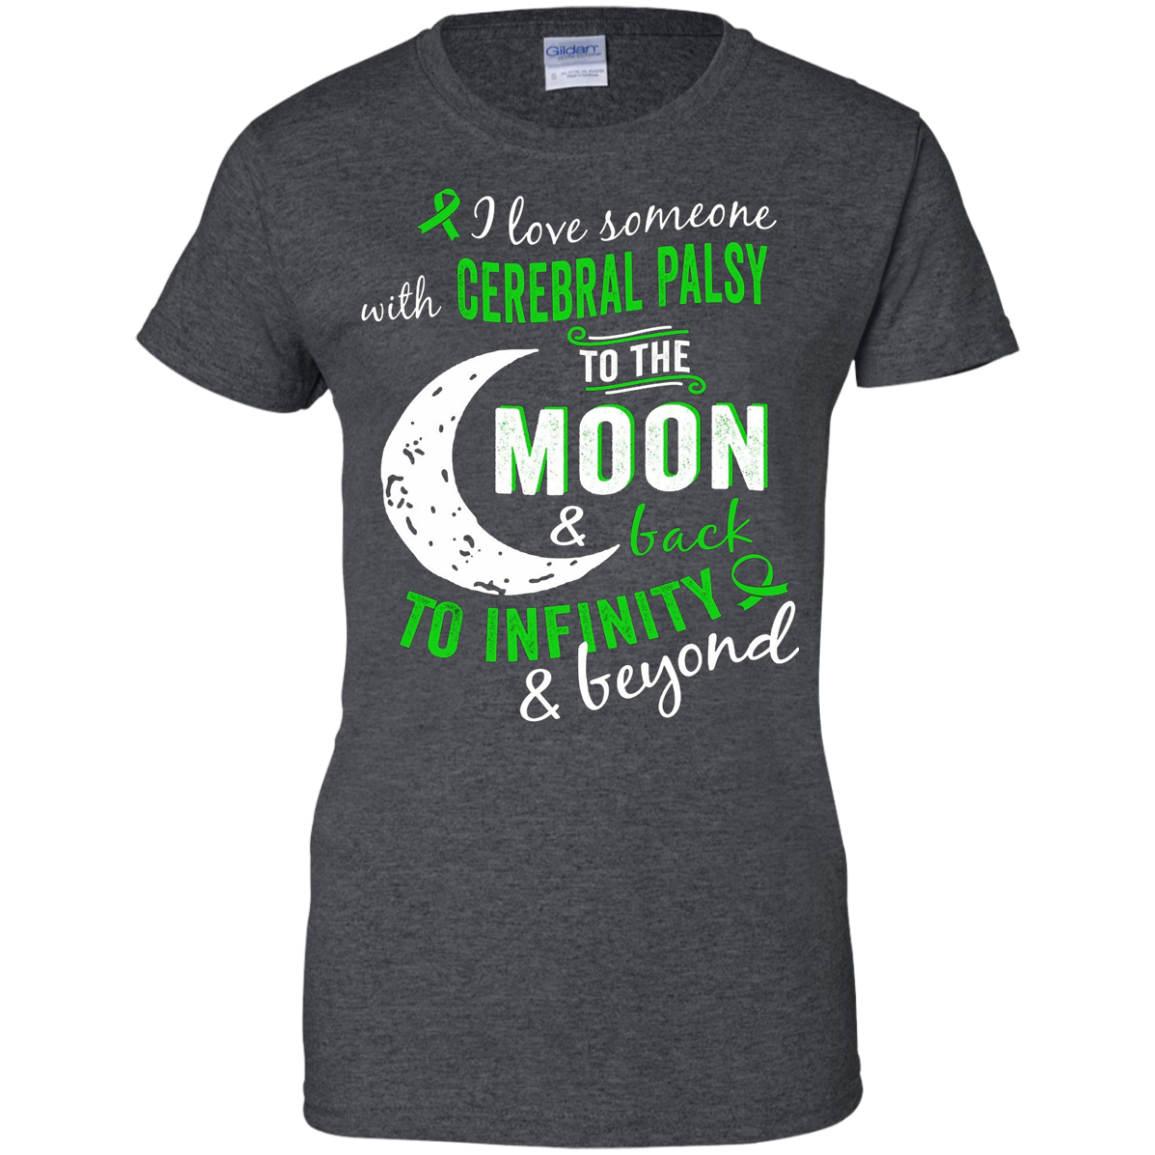 Cerebral Palsy Shirt - Cerebral Palsy Awareness Shirt